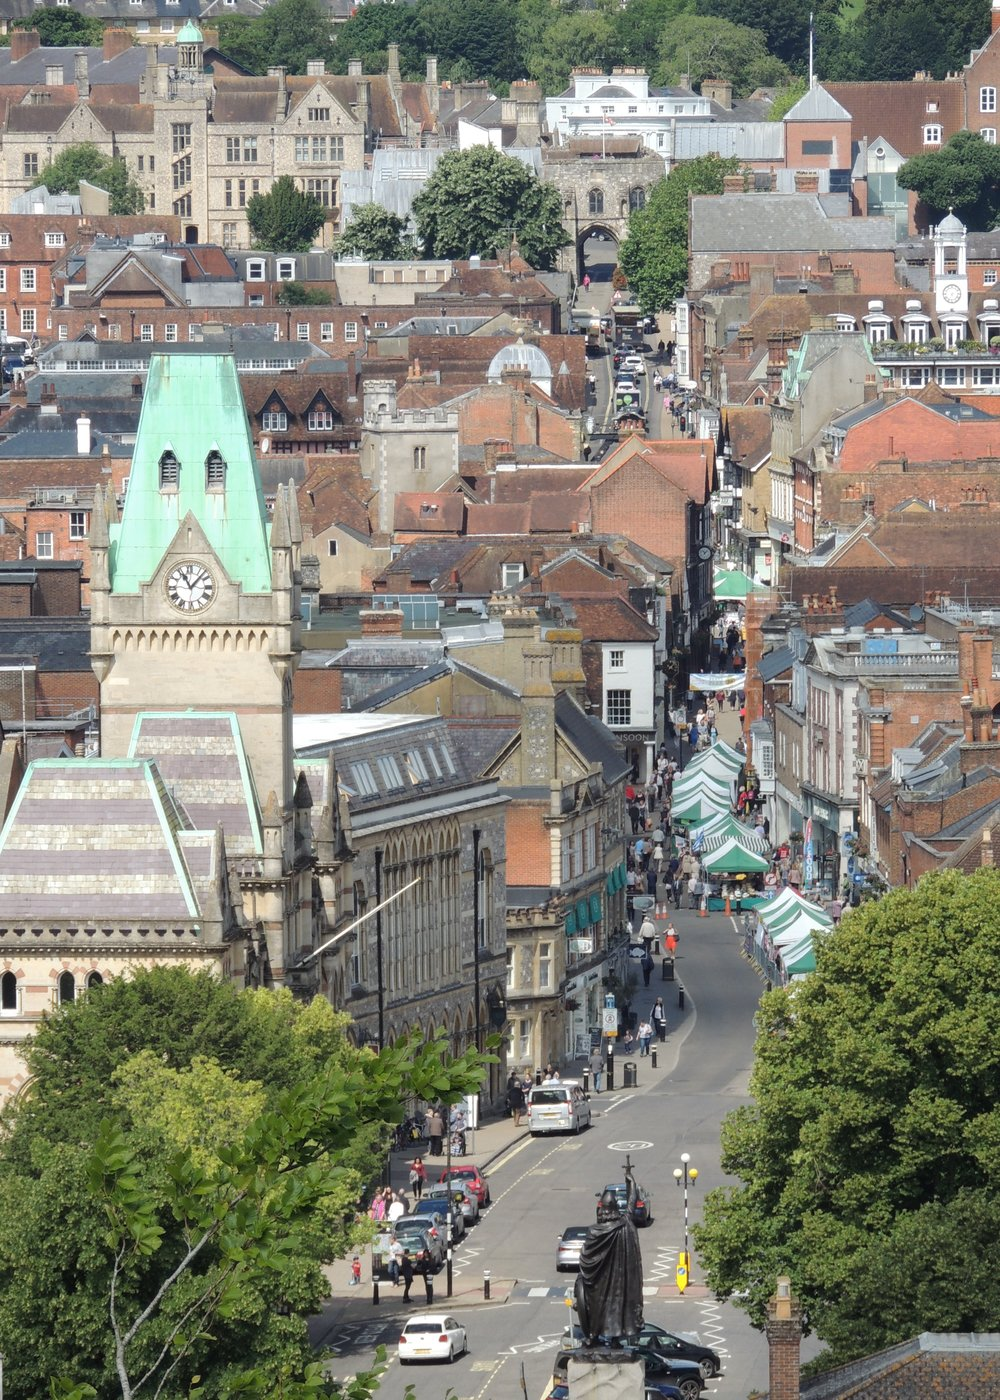 And finally - No description of Winchester would be complete without mentioning the High Street